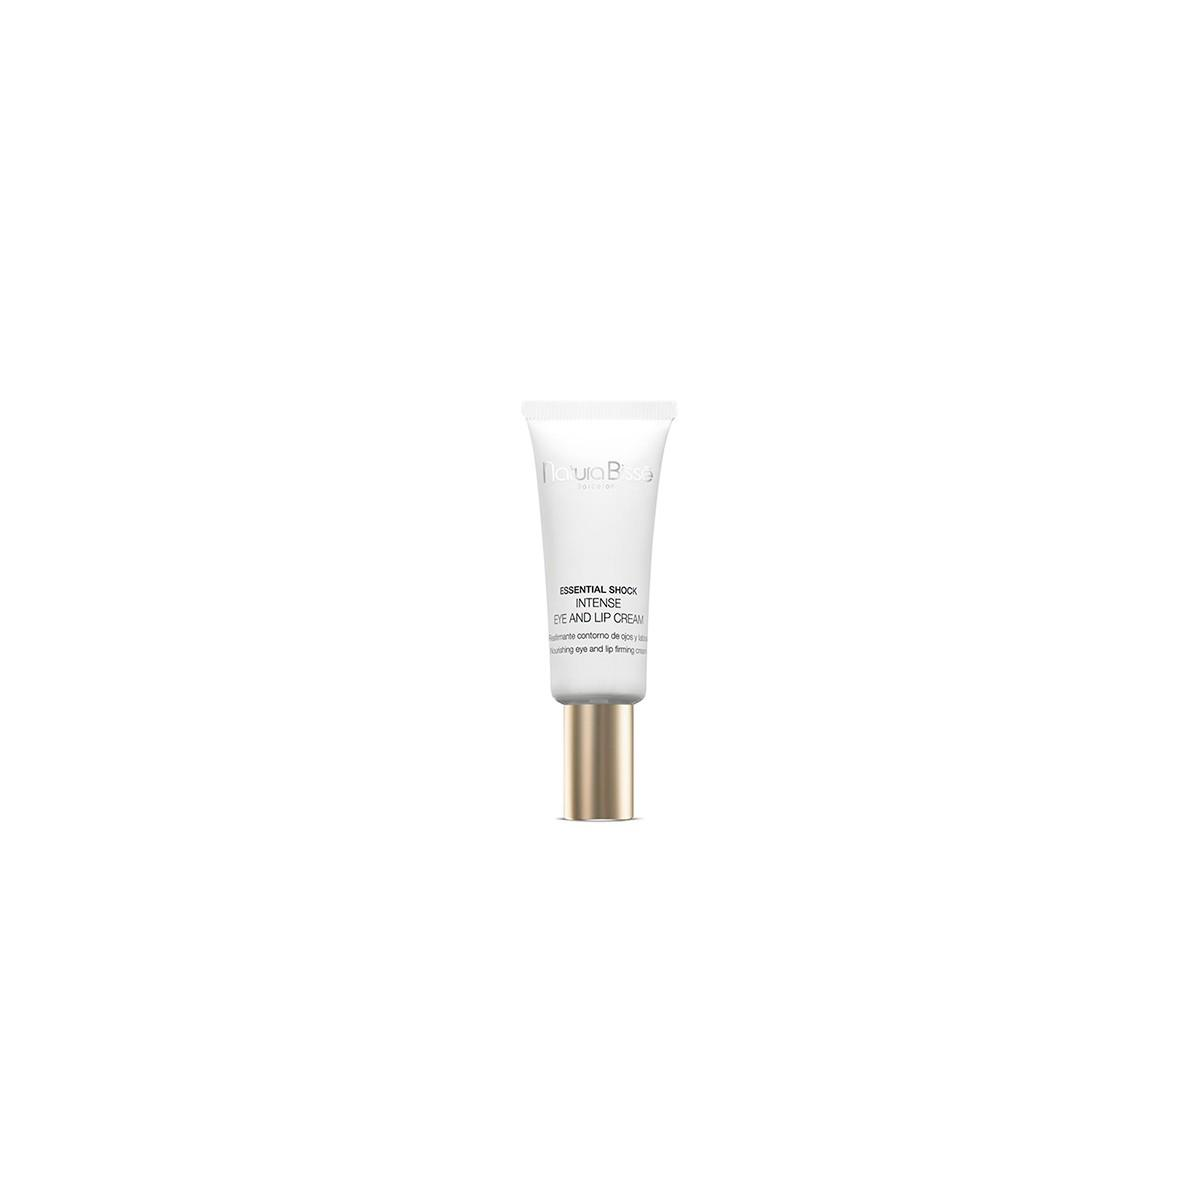 ESSENTIAL SHOCK INTENSE EYE & LIP CREAM